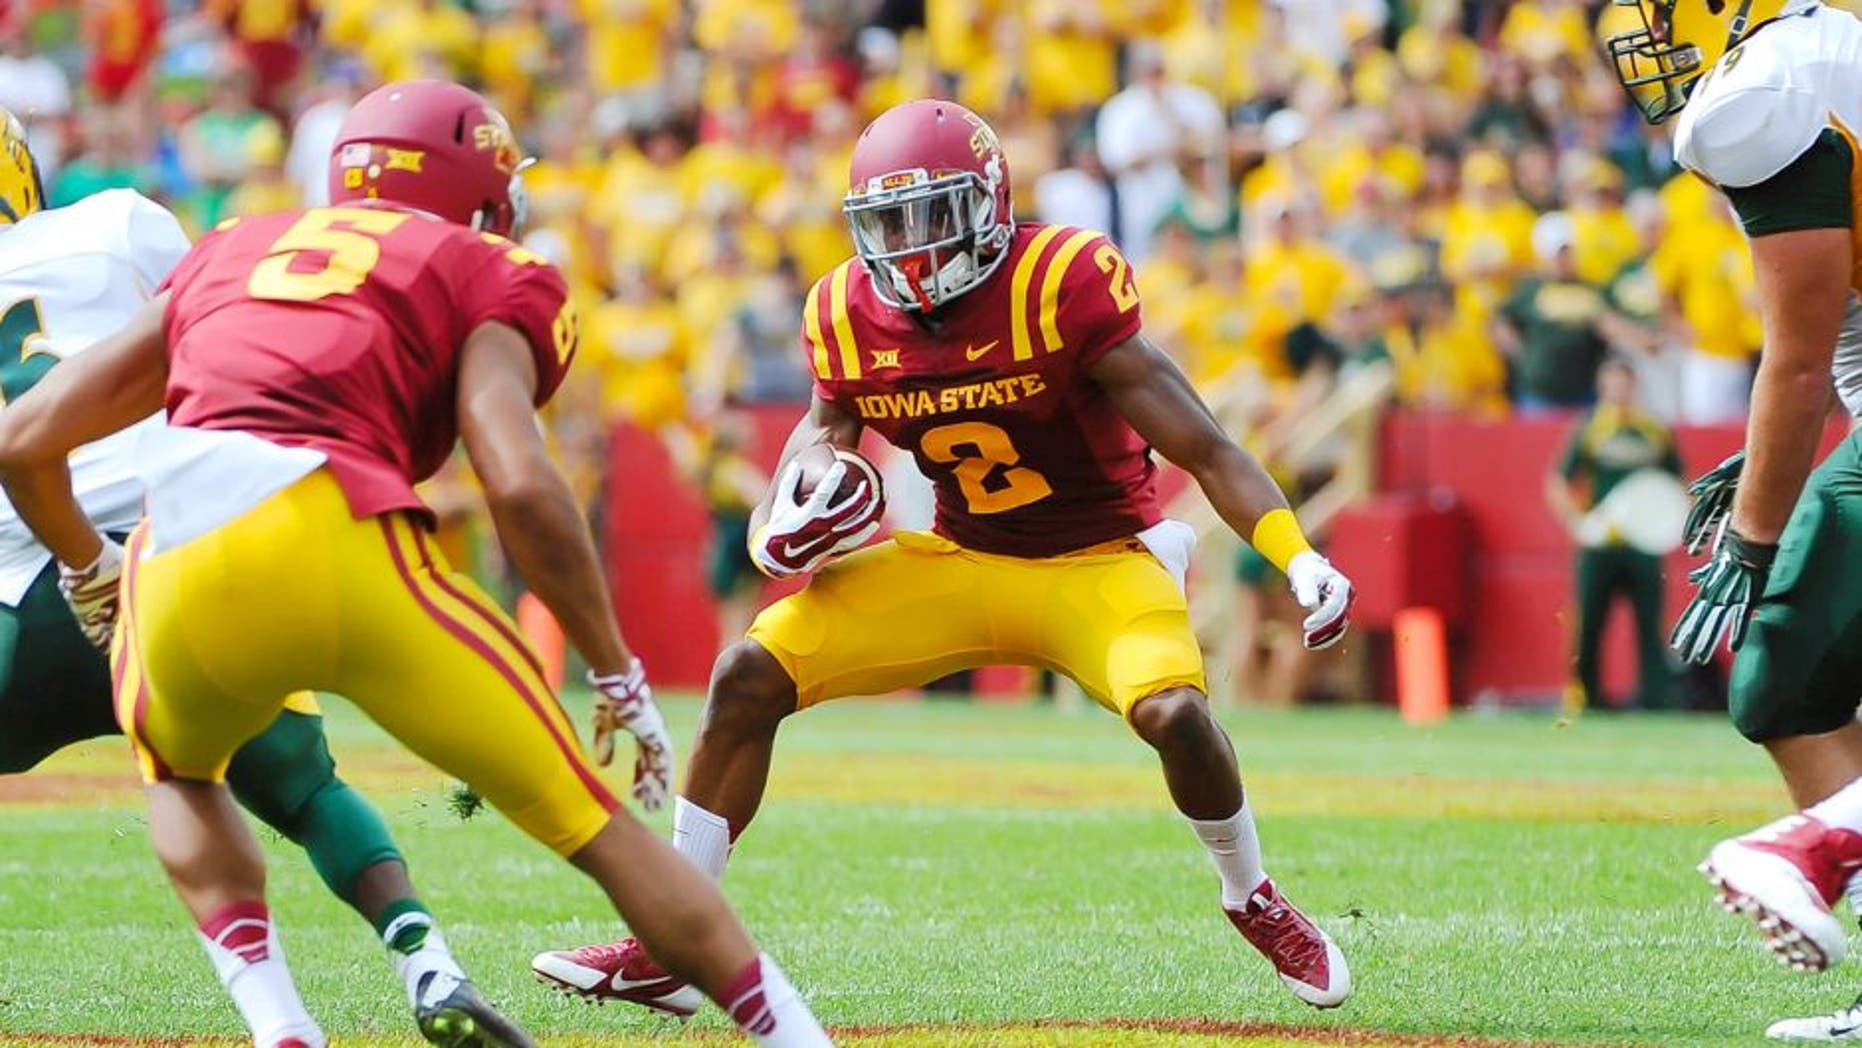 Aug 30, 2014; Ames, IA, USA; Iowa State Cyclones running back Aaron Wimberly (2) finds a hole against the North Dakota State Bison at Jack Trice Stadium. Mandatory Credit: Steven Branscombe-USA TODAY Sports